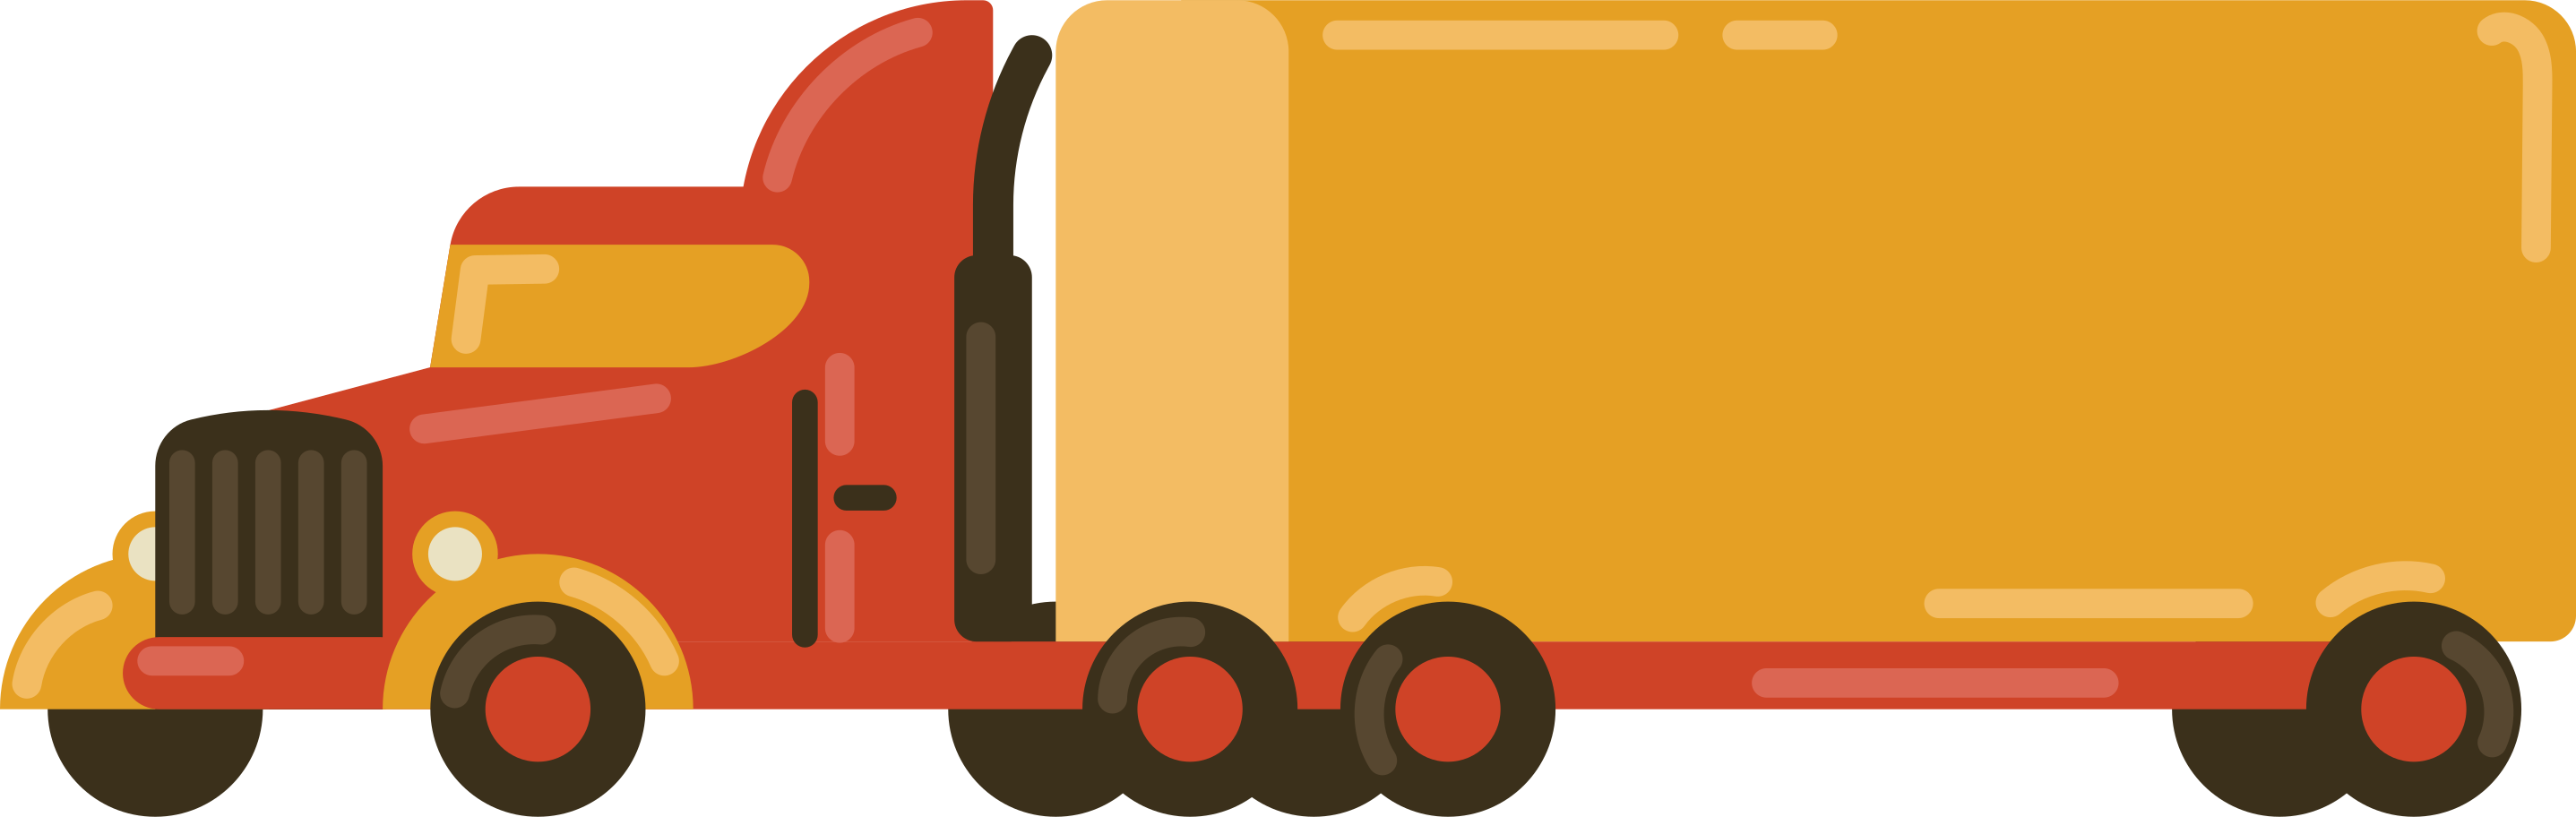 style truck Vector images in PNG and SVG   Icons8 Illustrations